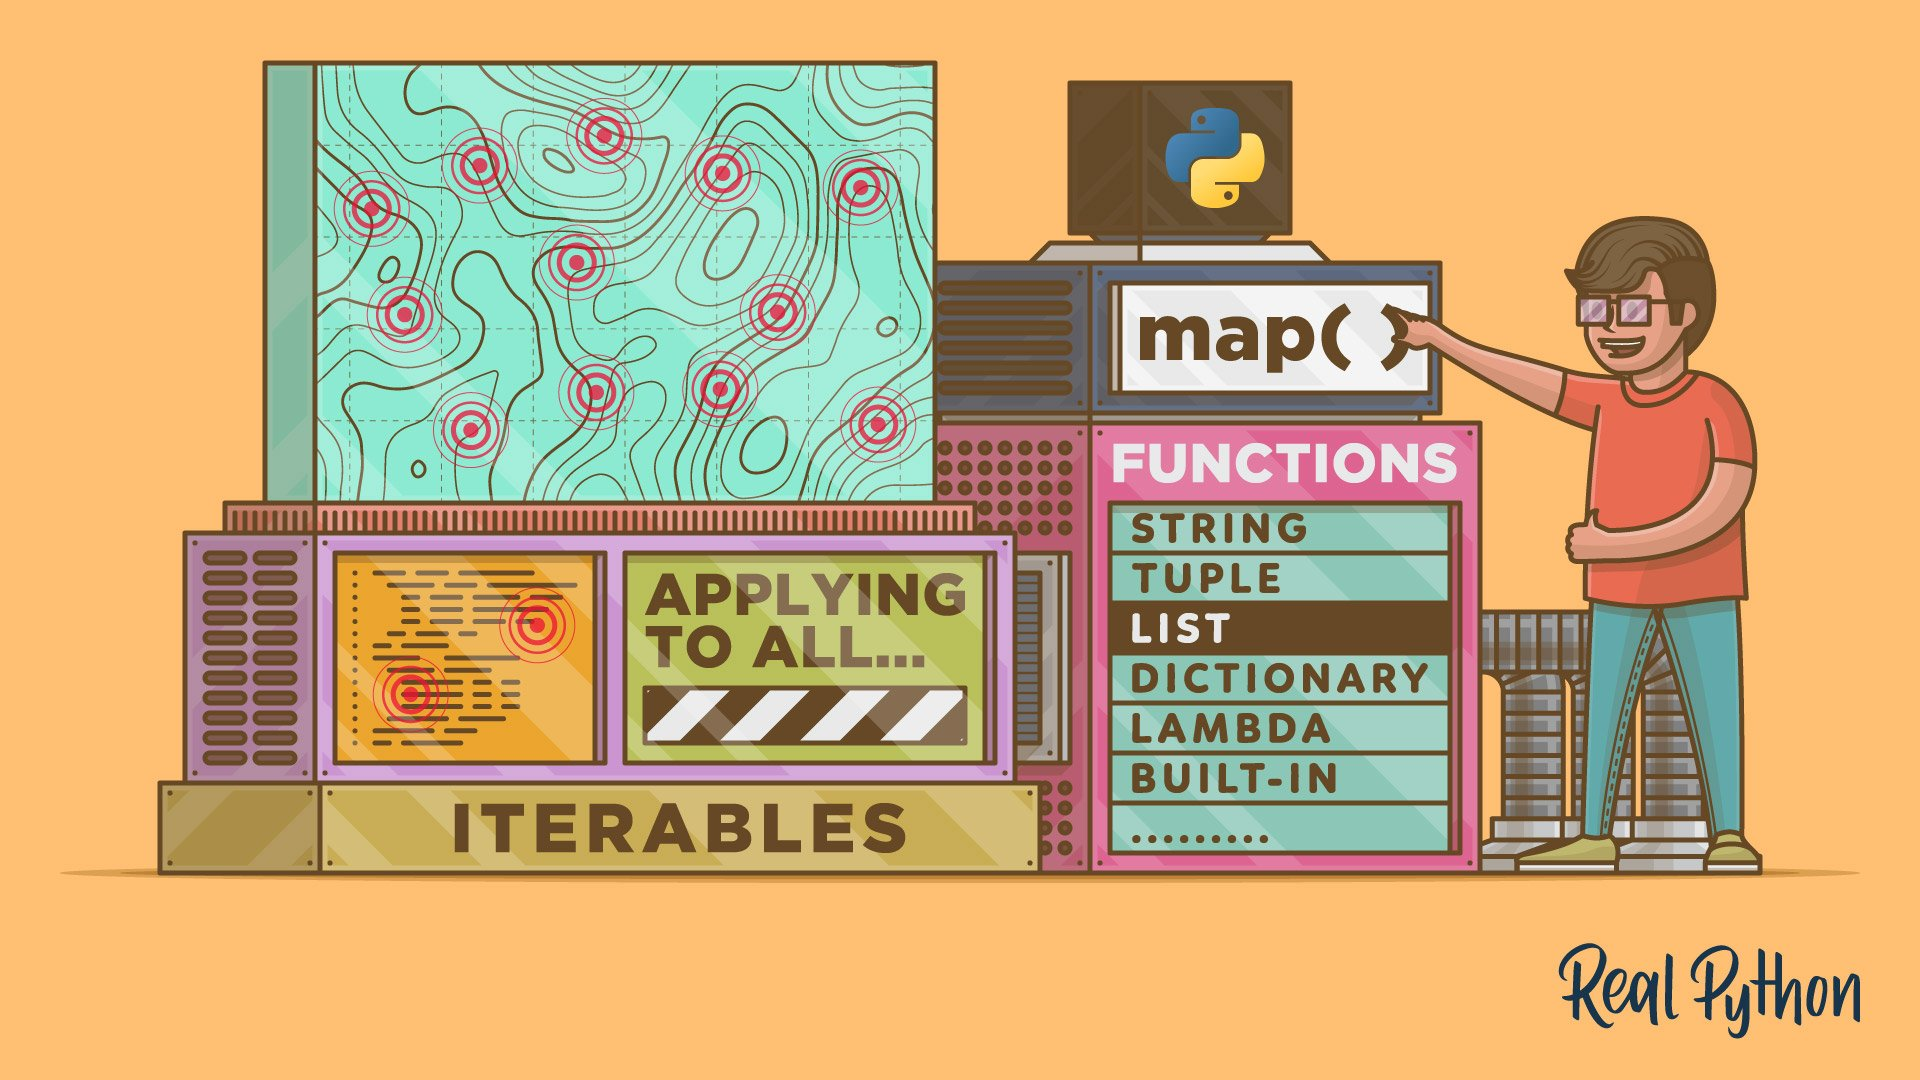 Python's map(): Processing Iterables Without a Loop